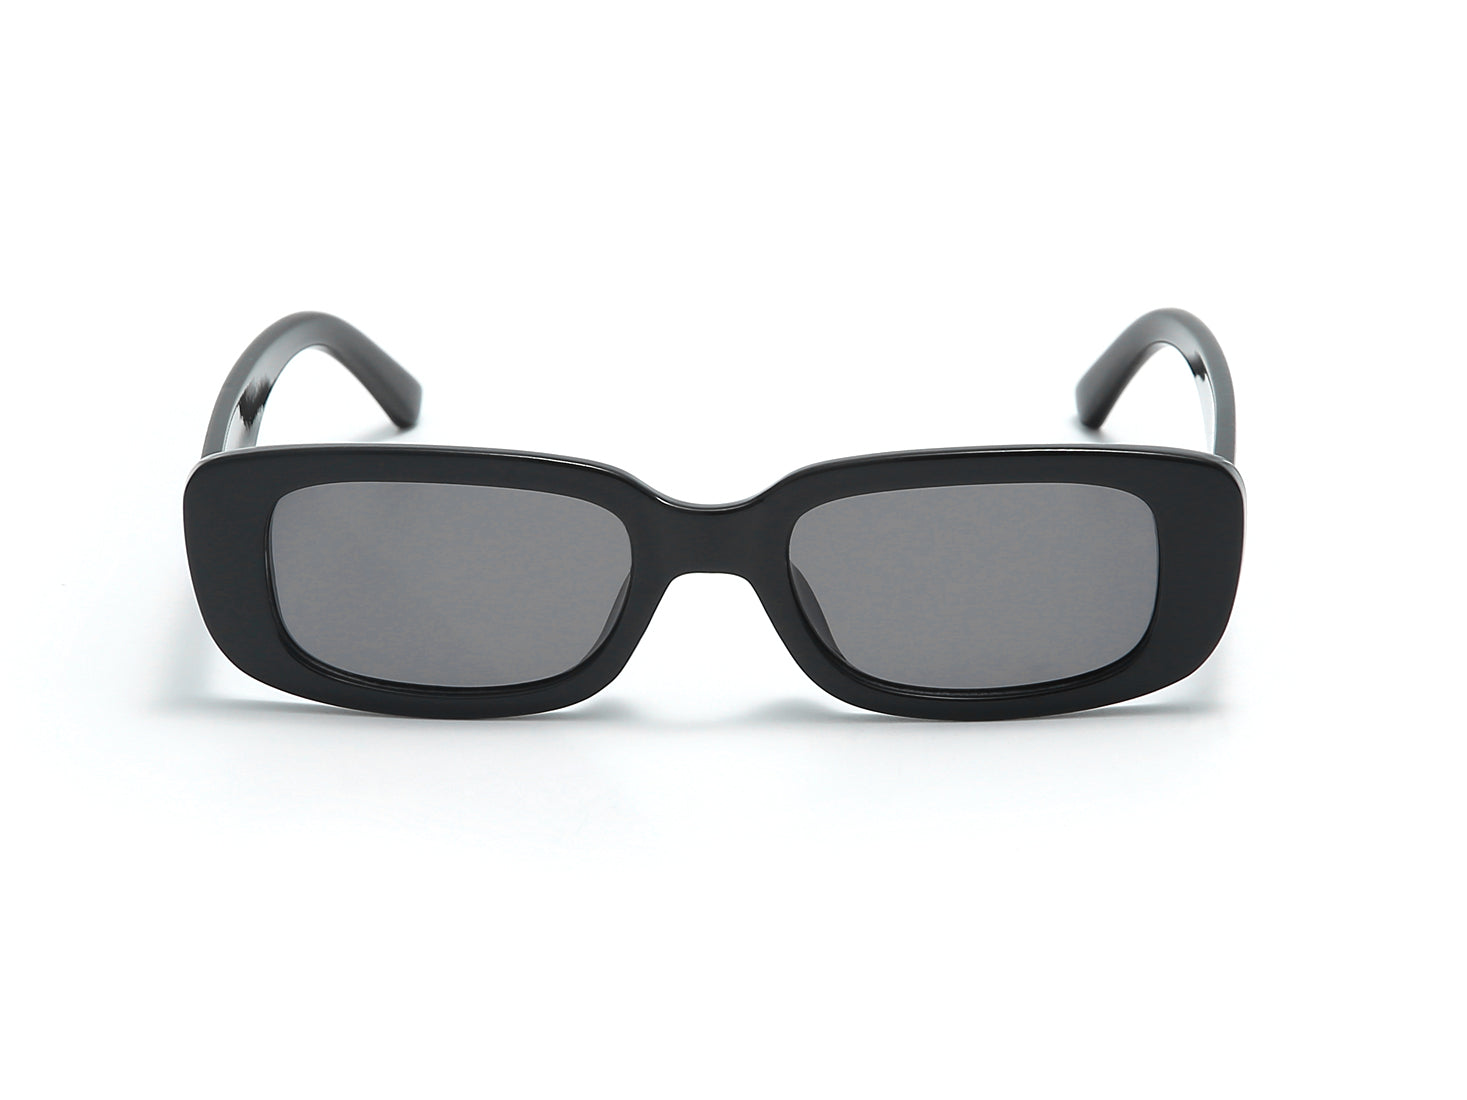 S1158 - Retro Vintage Slim Rectangle Fashion Sunglasses